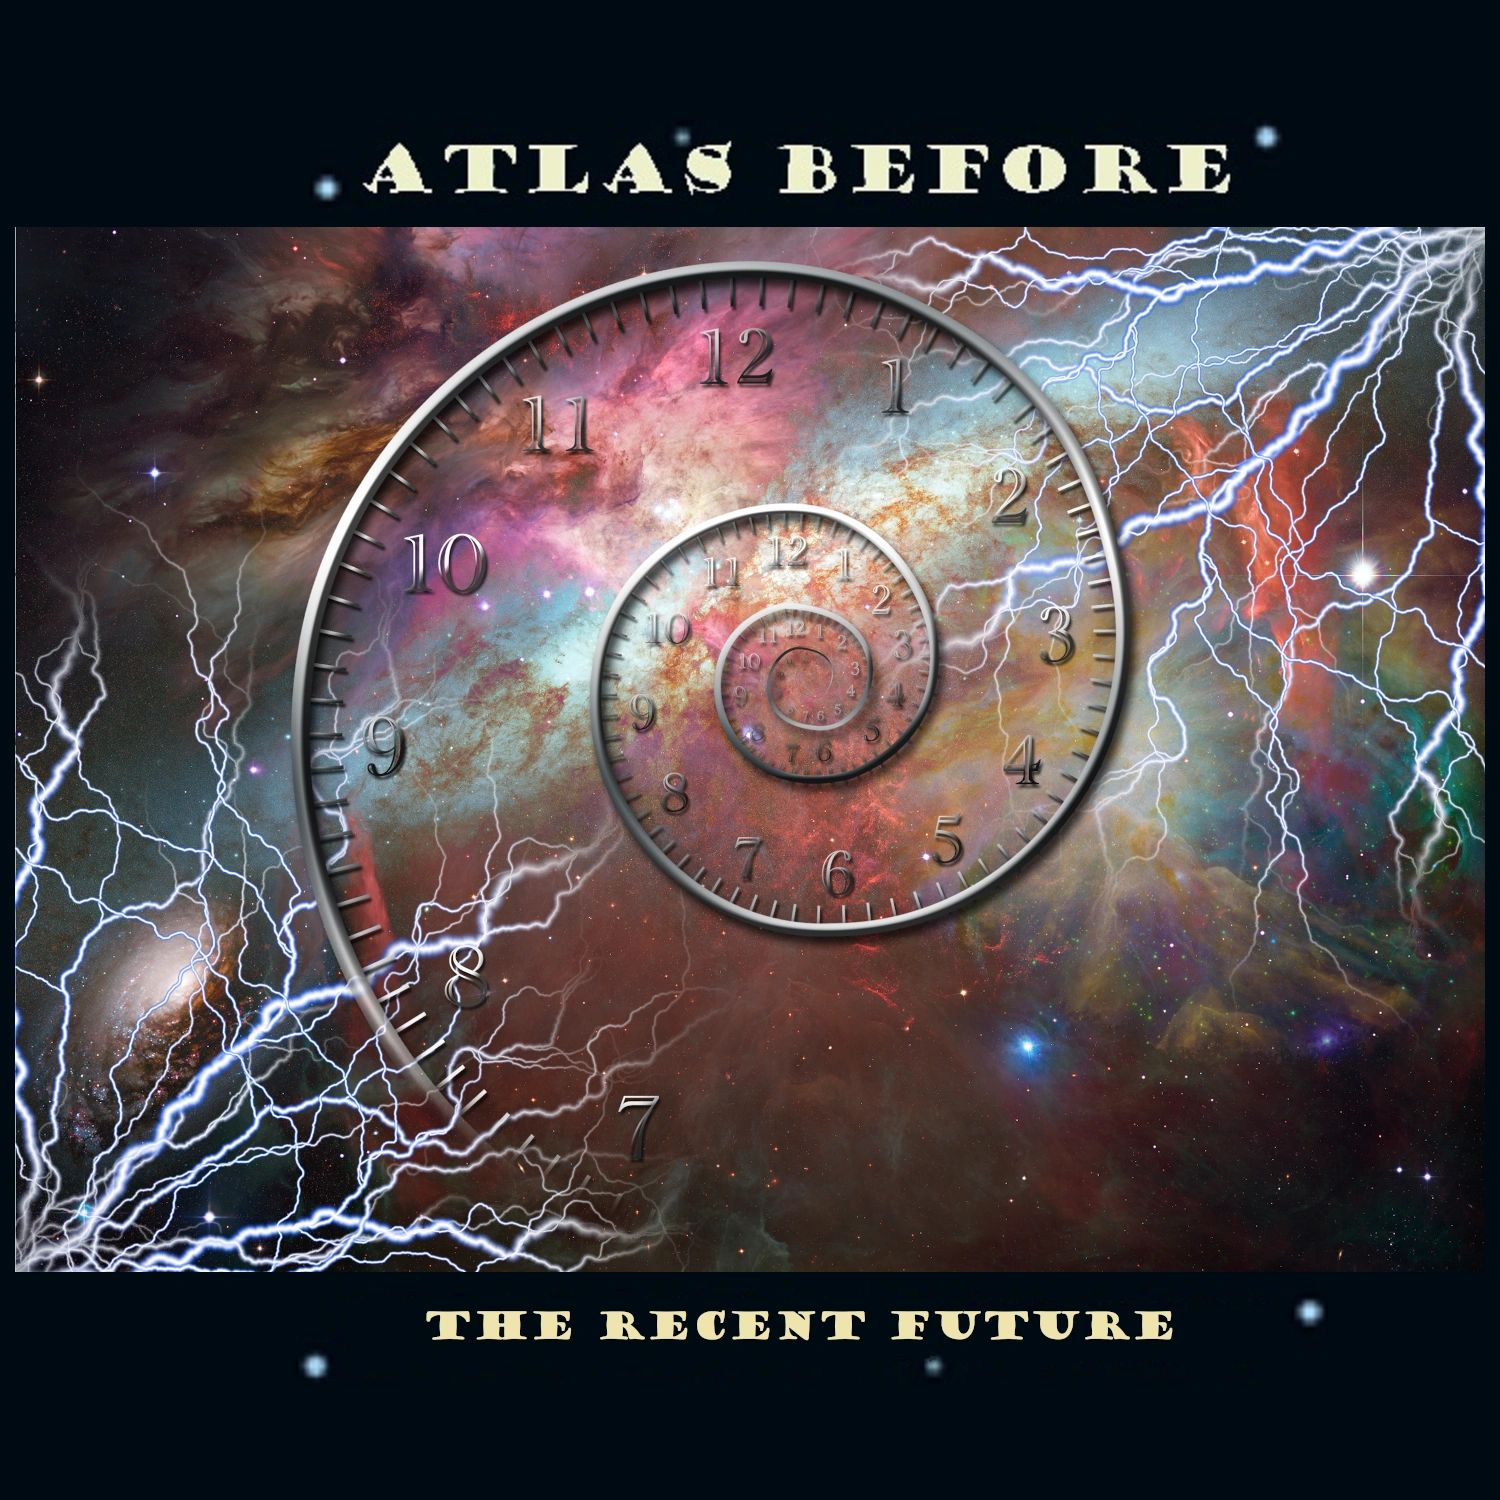 Cover art for the progressive rock CD 'The Recent Future' by 'Atlas Before' with time travel clock.